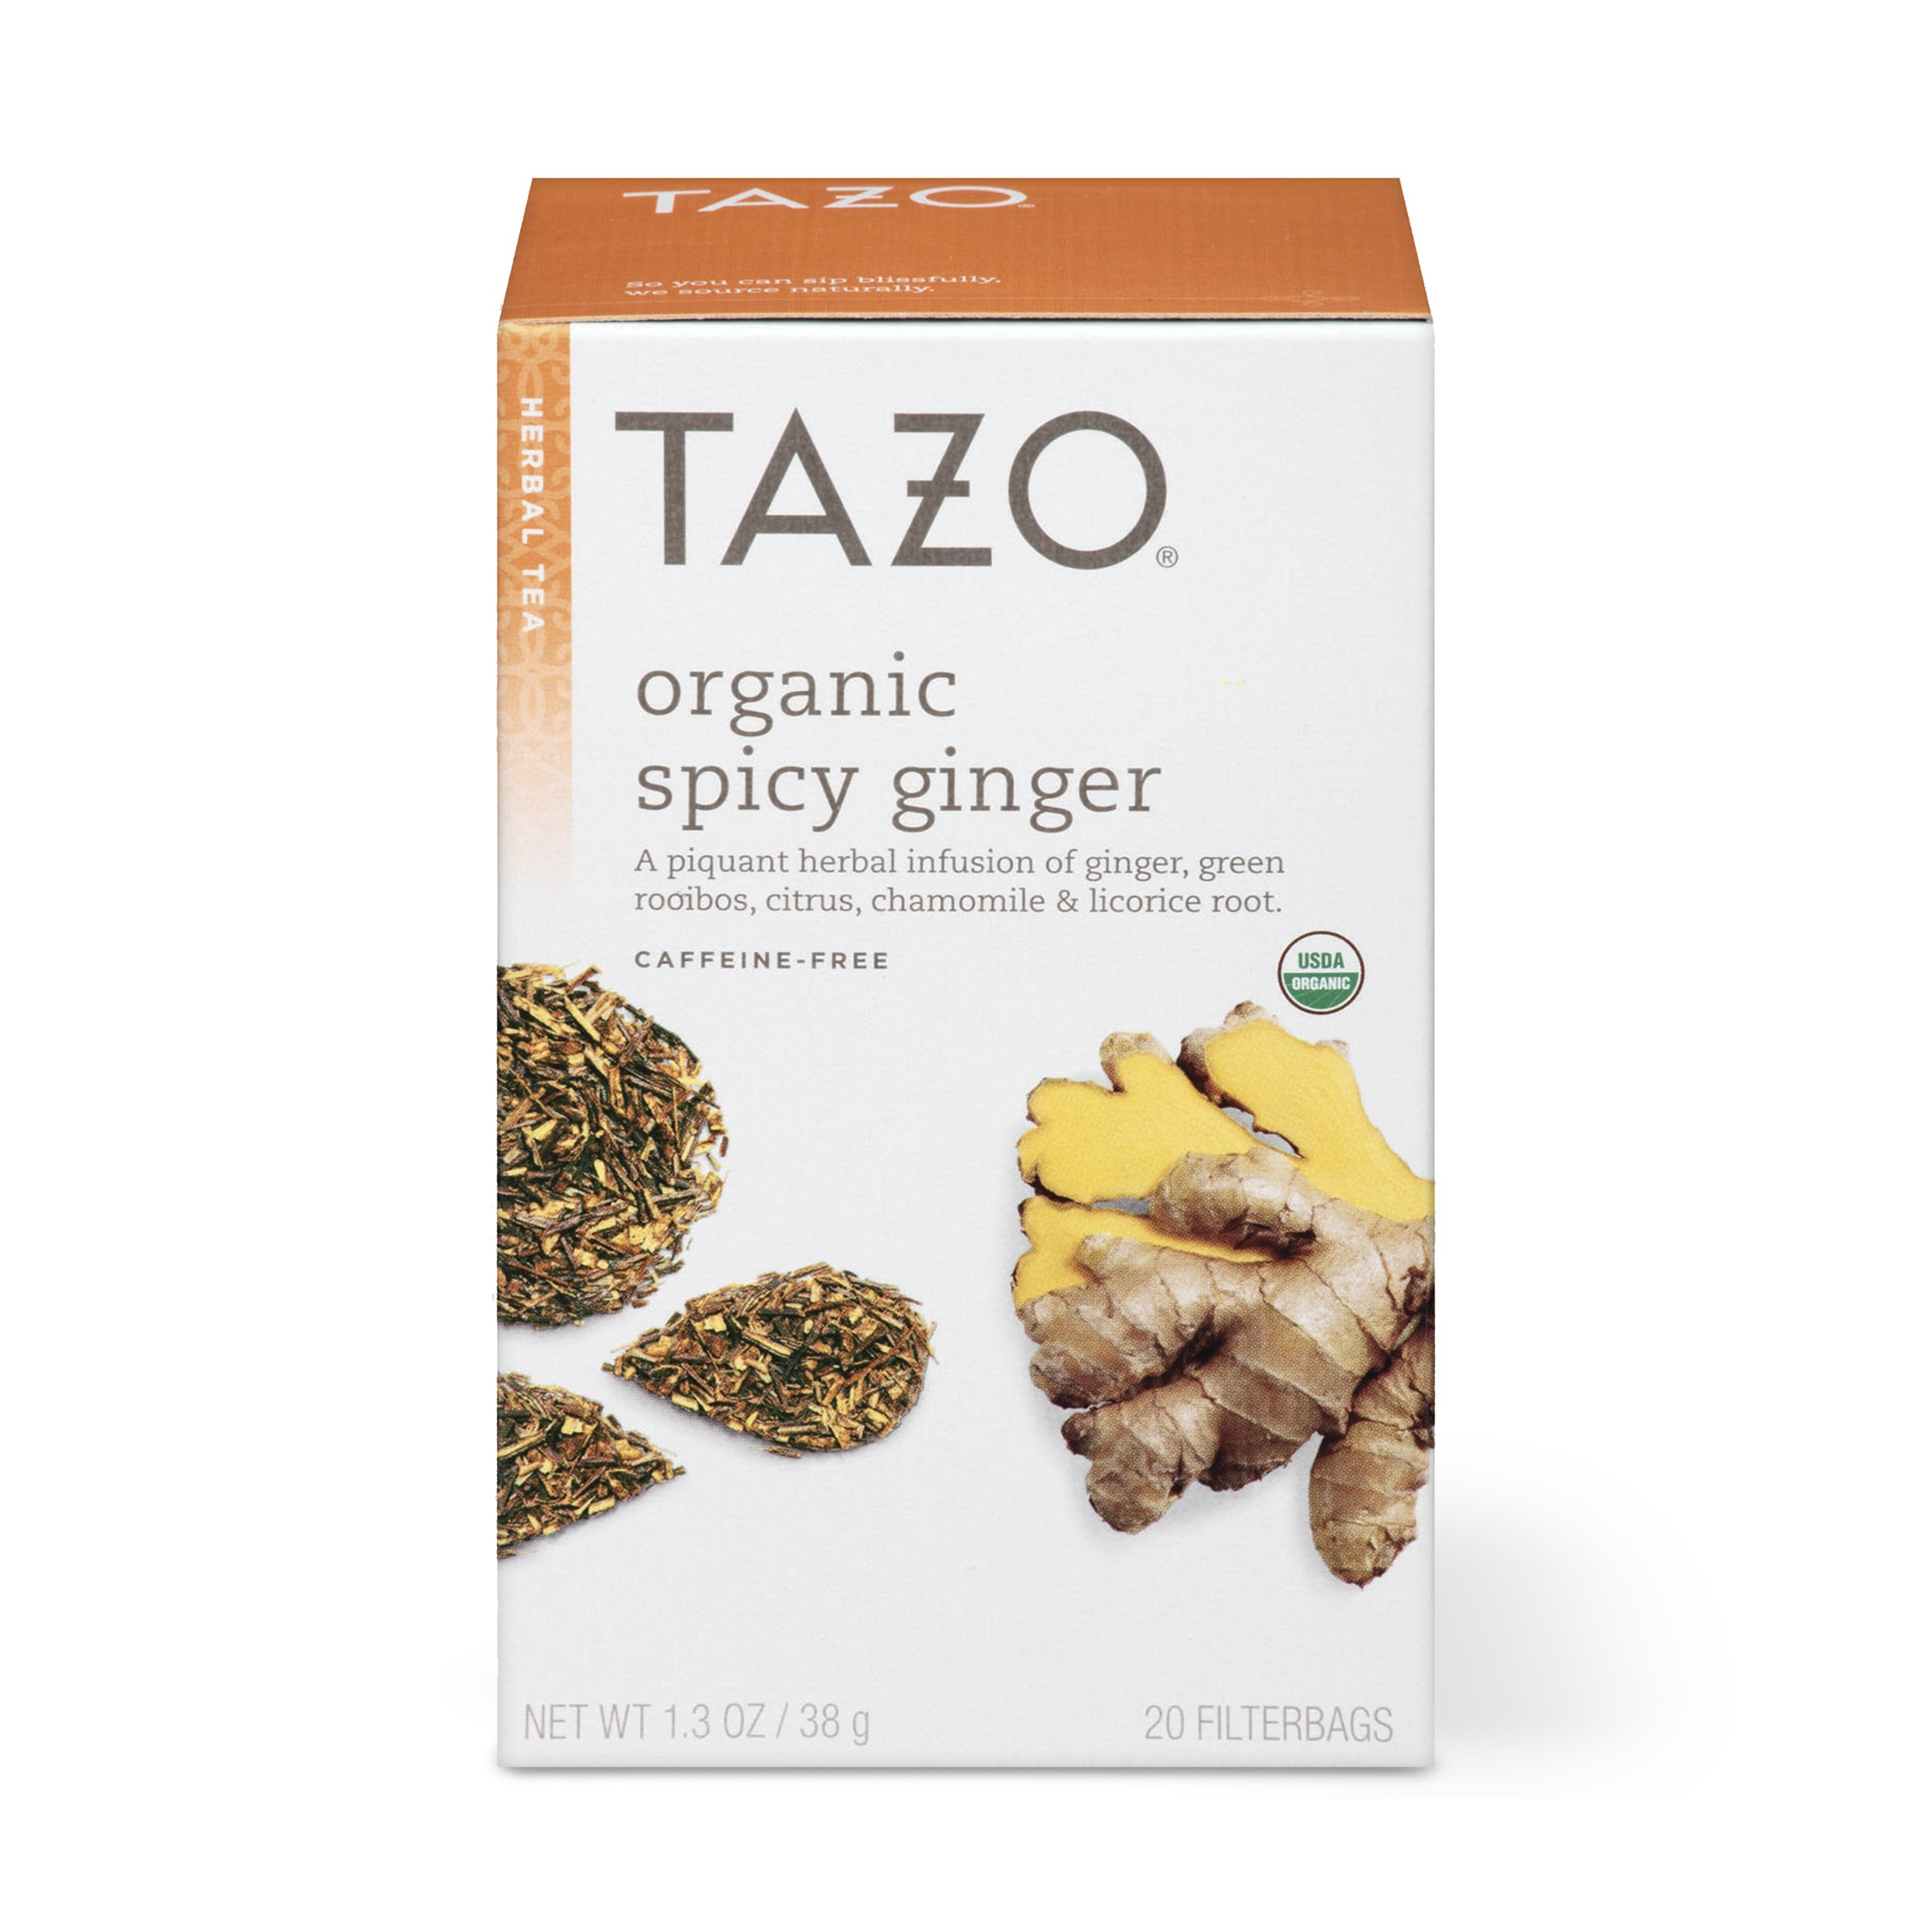 Tazo Organic Spicy Ginger Herbal Tea Filterbags , 20 Count (Pack of 6) by Tazo